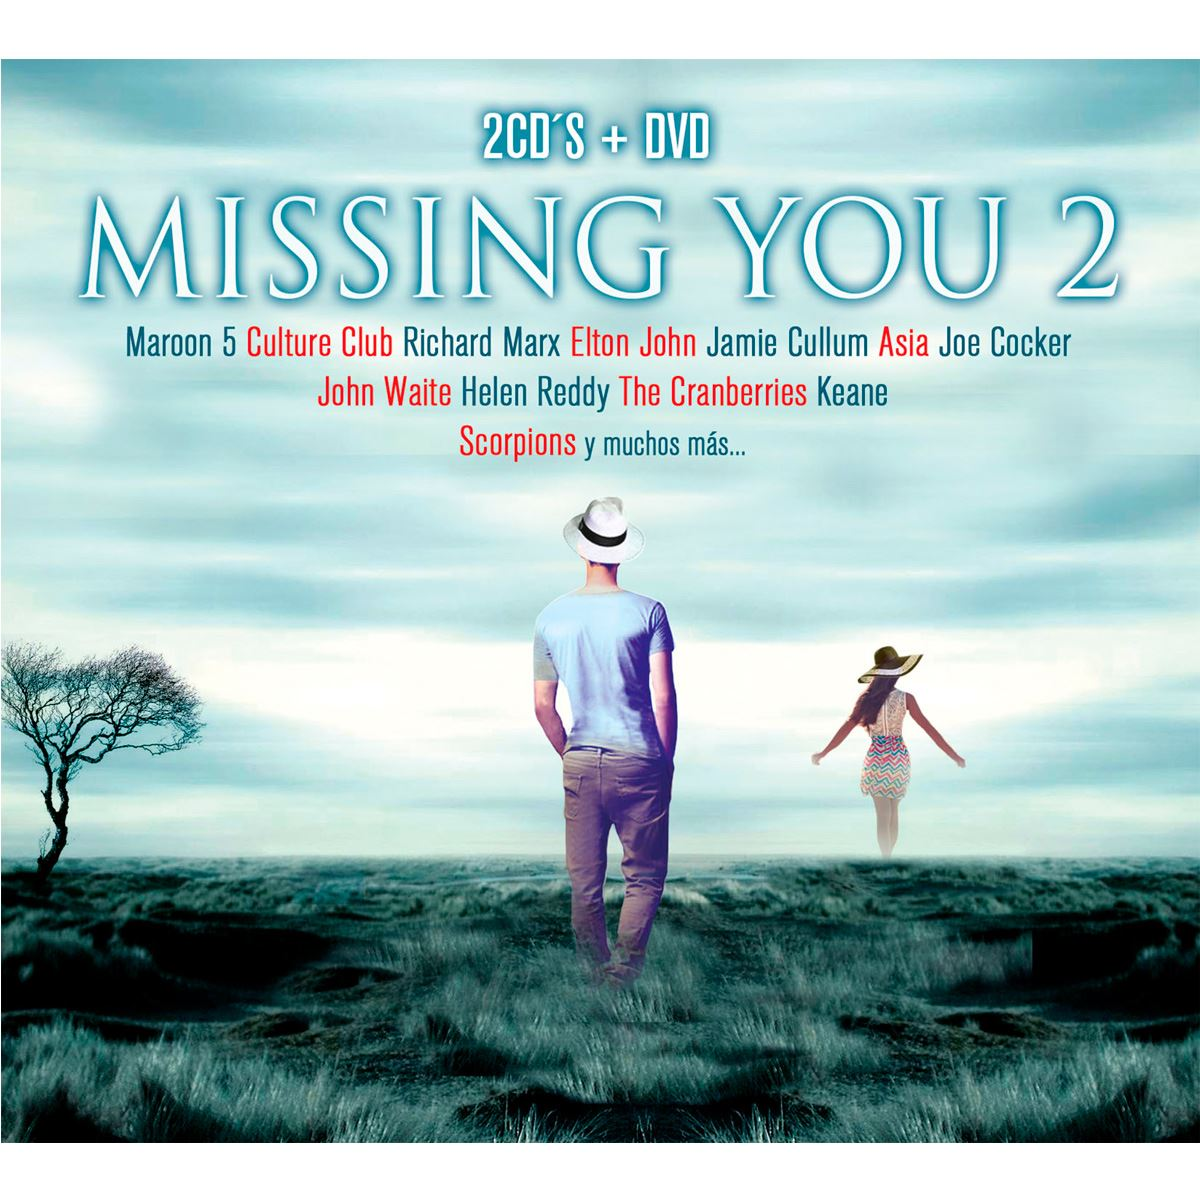 CD2/ DVD Missing You 2